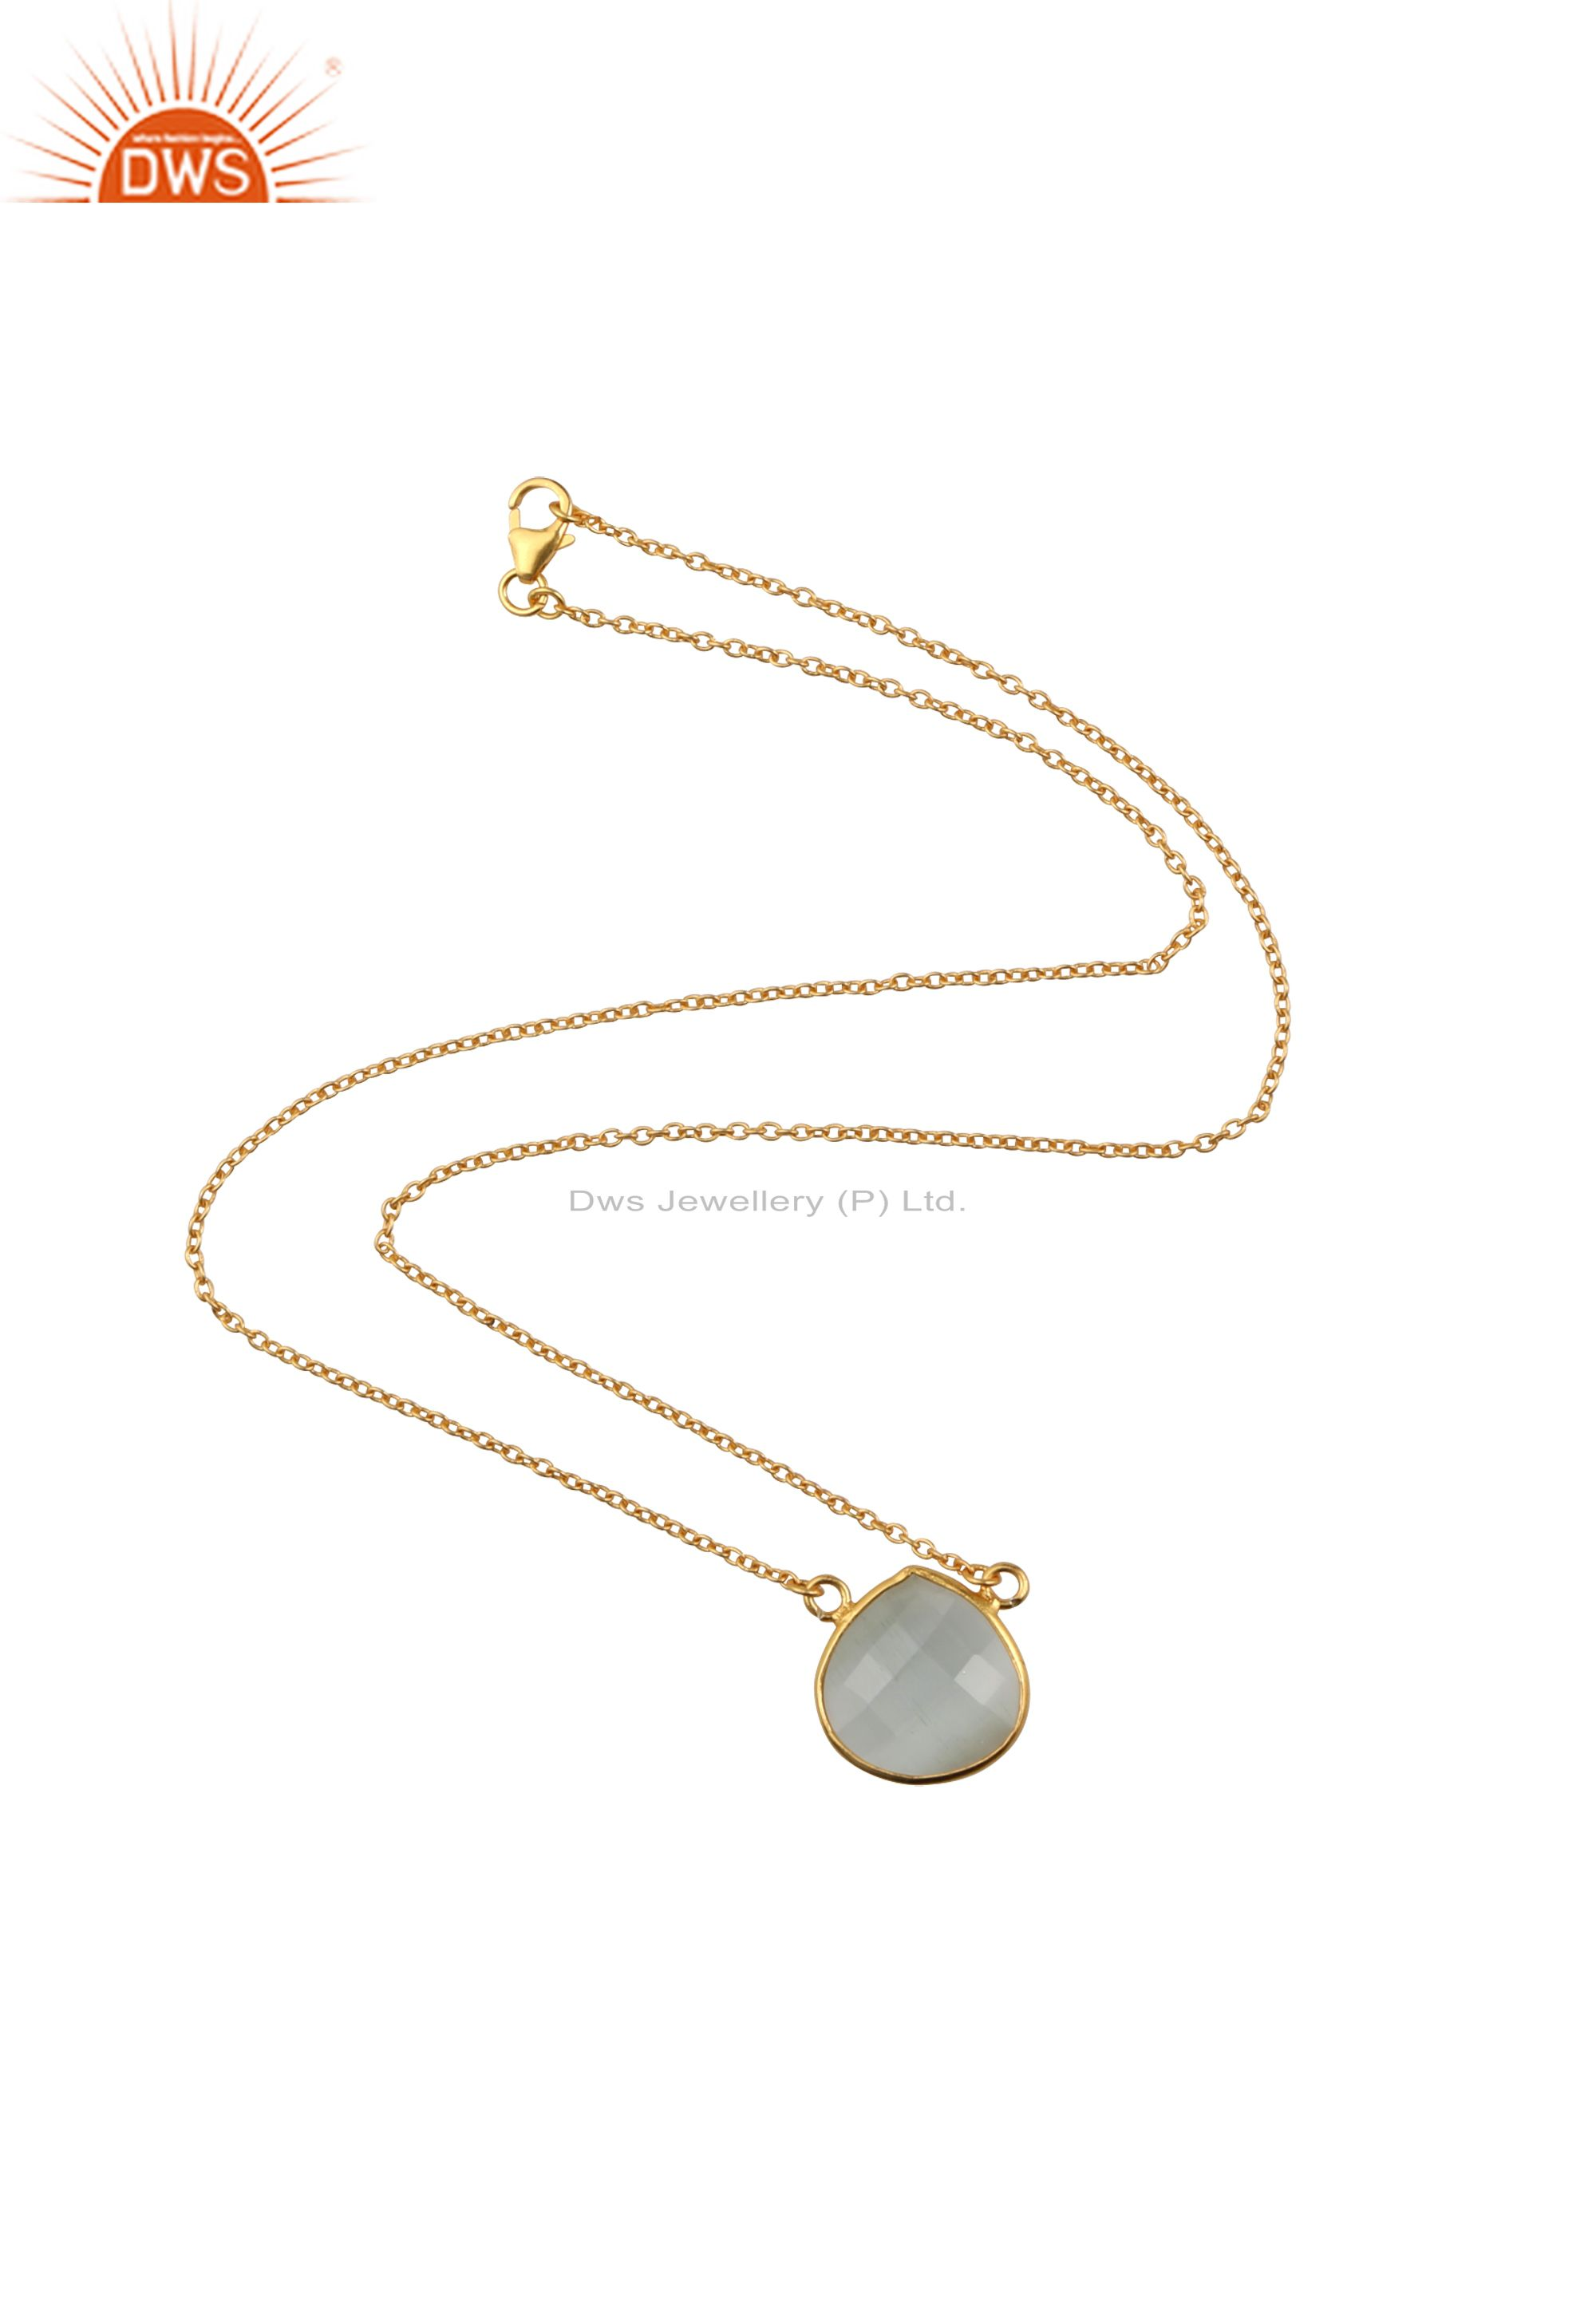 18K Yellow Gold Plated Sterling Silver White Moonstone Pendant Chain Necklace